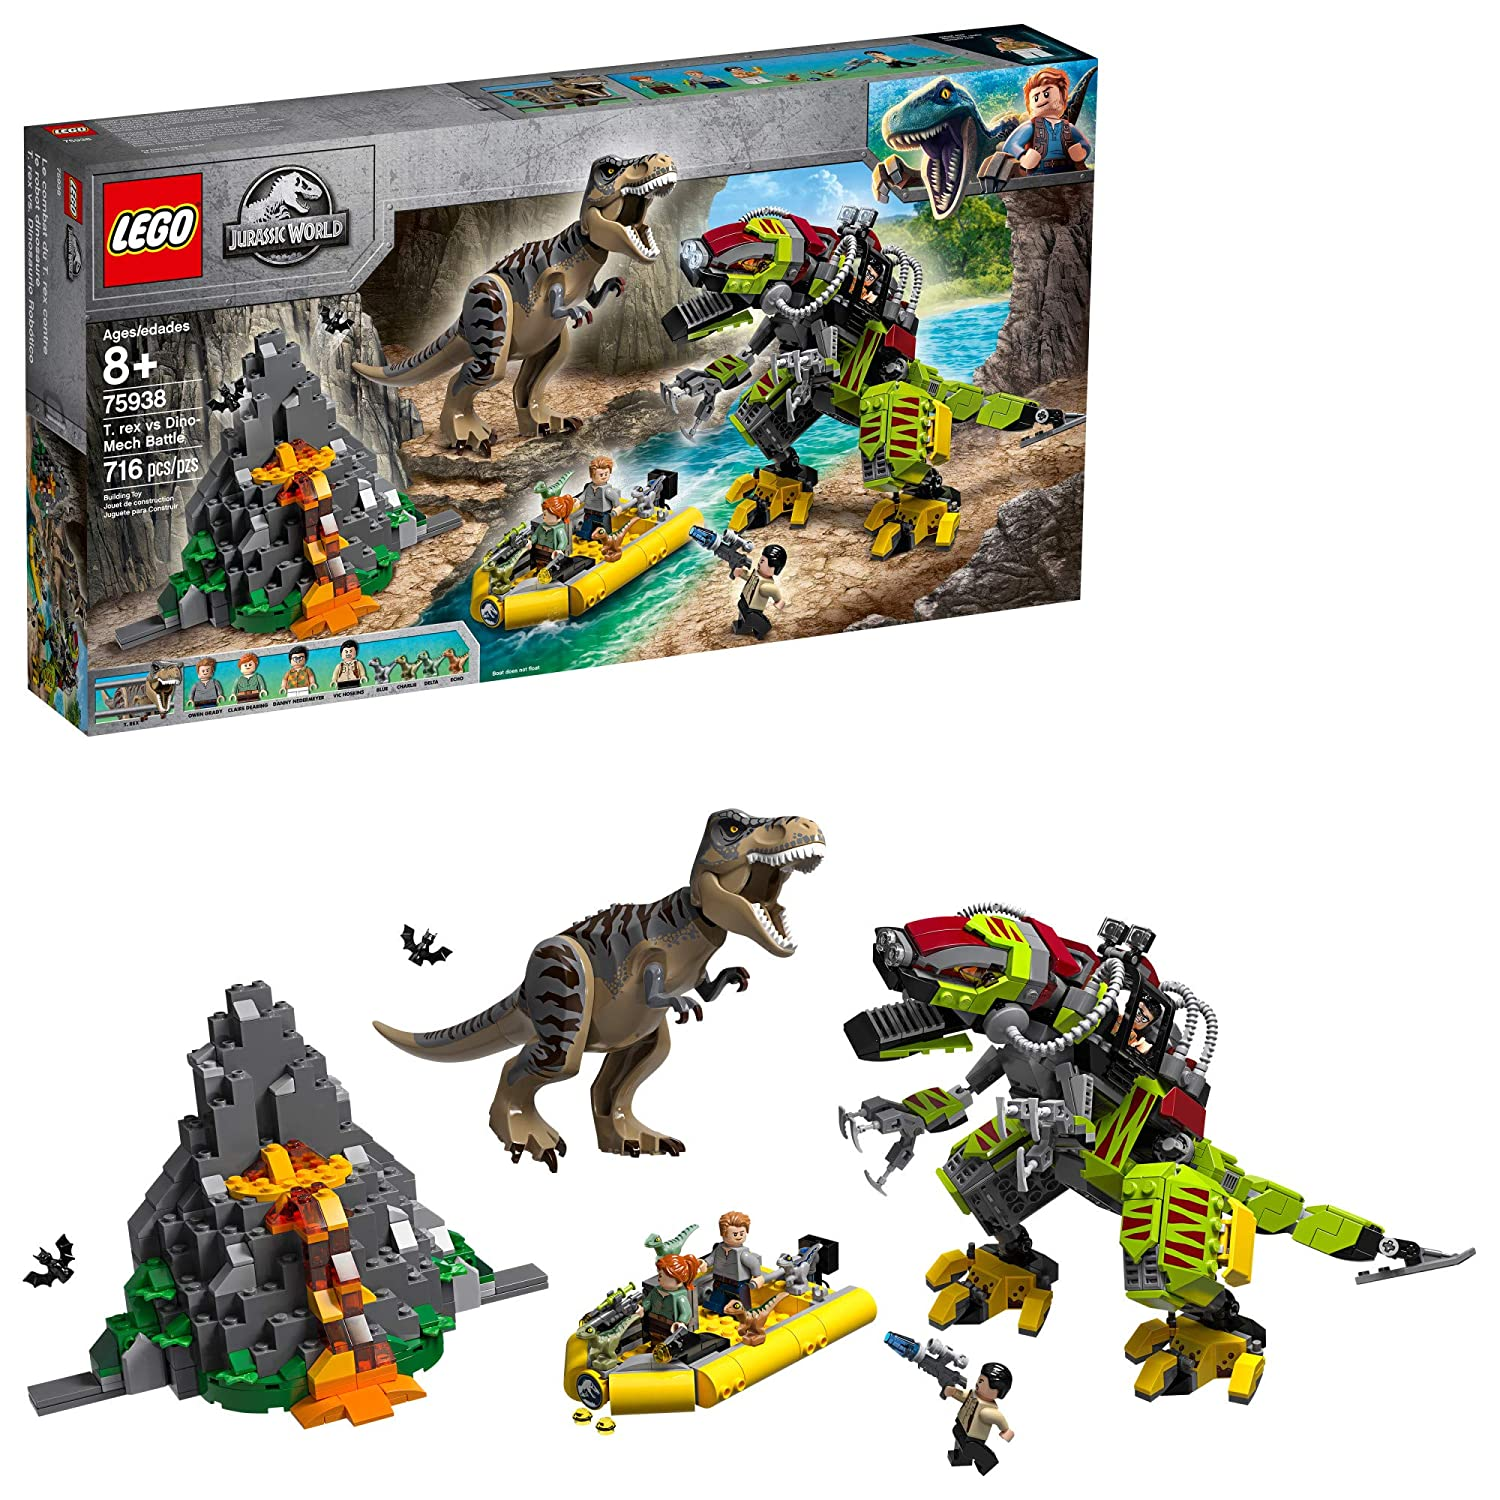 Top 8 Best Lego Dinosaurs Set Reviews in 2021 7